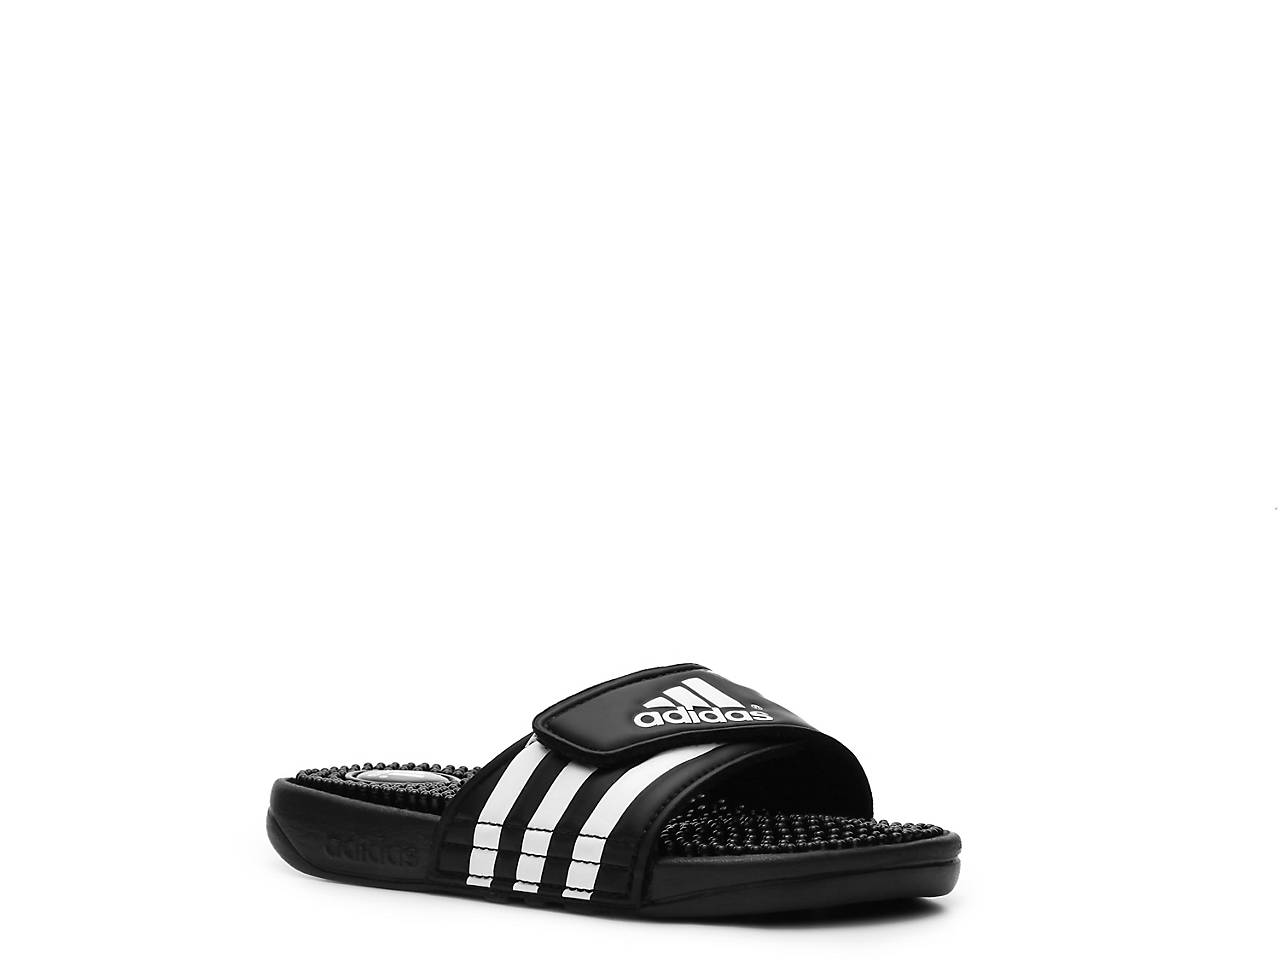 7e7566f83 adidas Adissage Toddler   Youth Slide Sandal Kids Shoes